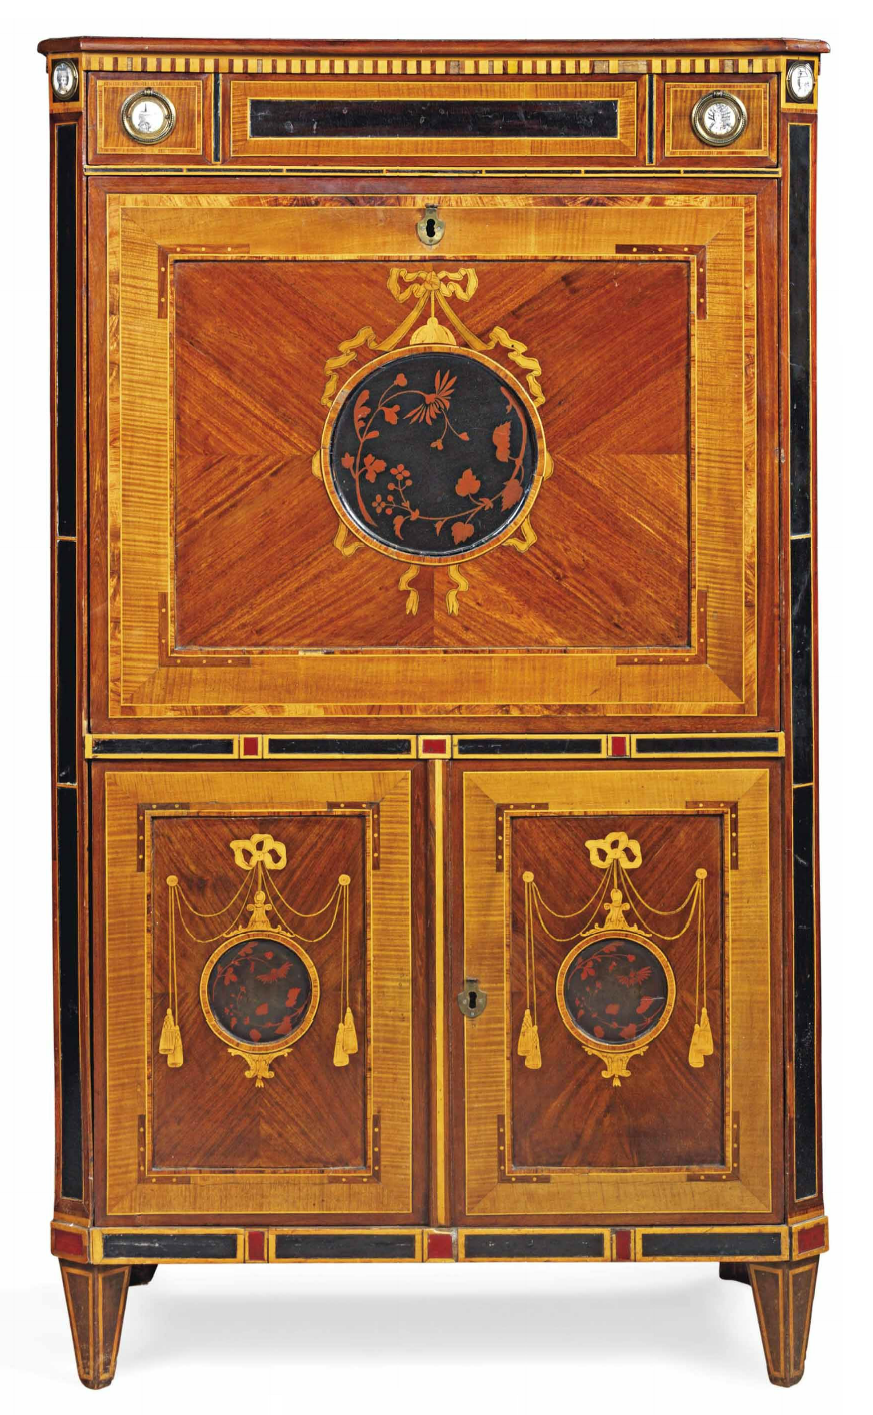 A DUTCH INLAID LACQUER AND japanned satinwood AND FRUITWOOD MARQUETRY SECRETARY SEAT LATE 18TH CENTURY The canted rectangular top with frieze drawer, inset with enamel medallions depicting portraits, above a hinged fallfront inset with a ribbon-tied circular panel depicting flowers, enclosing a fitted interior with drawers and compartments, above two doors with inset circular further Top ribbon-tied panels depicting flowers, forehead tapering legs, with dealers label to the reverse on square